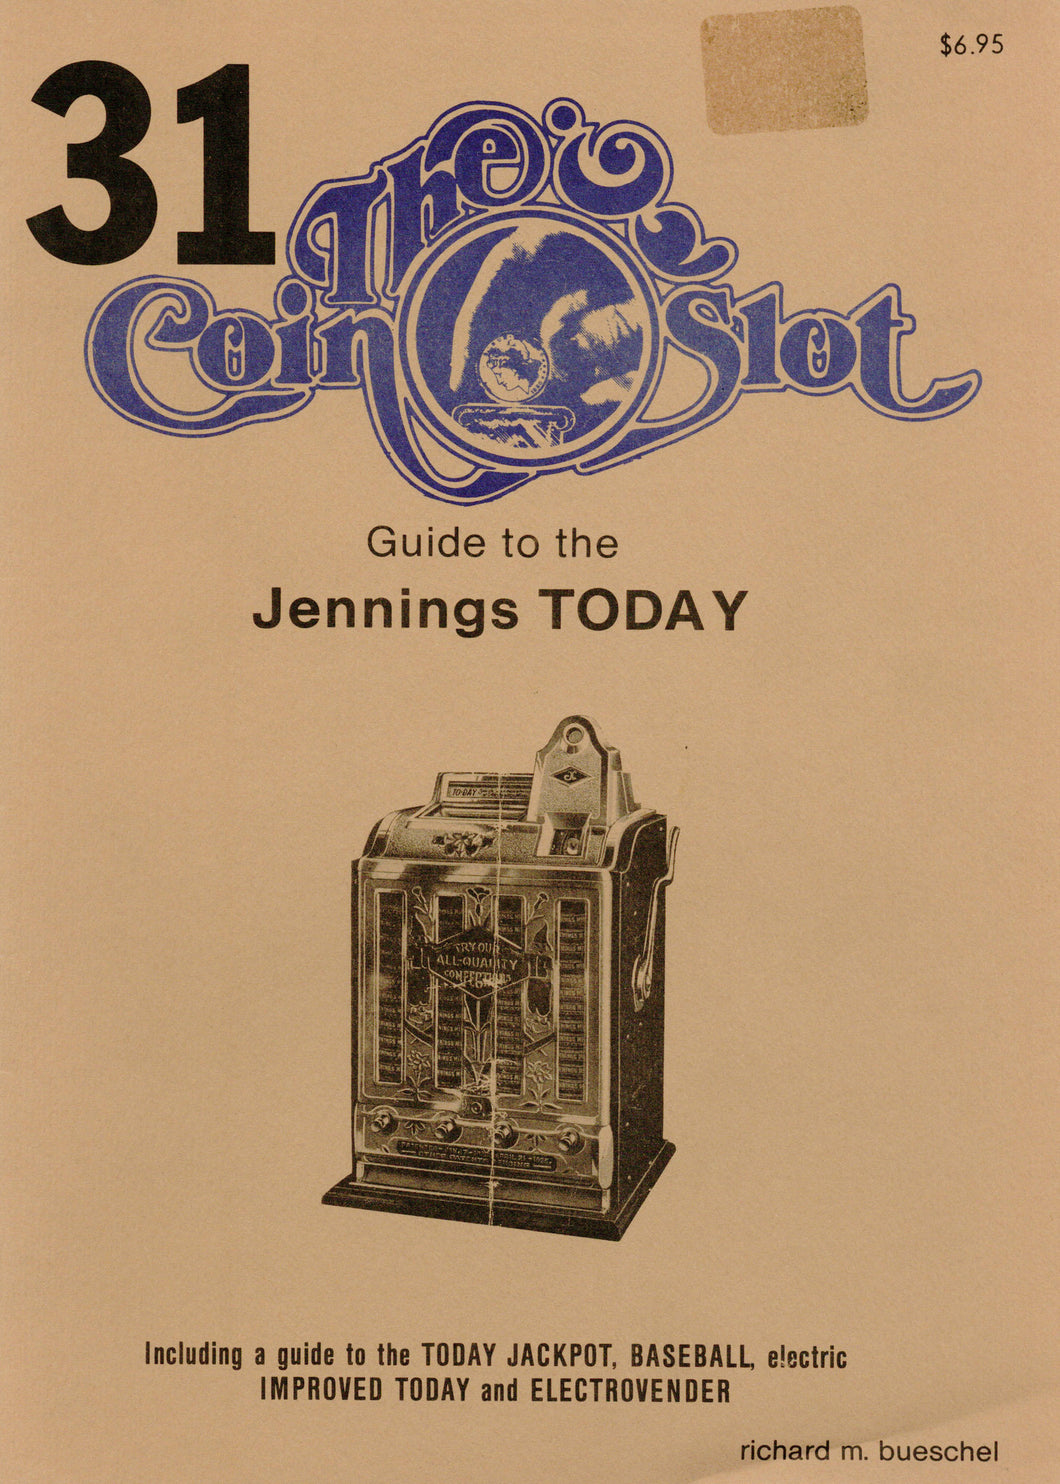 Coin Slot #31. Guide to the Jennings Today